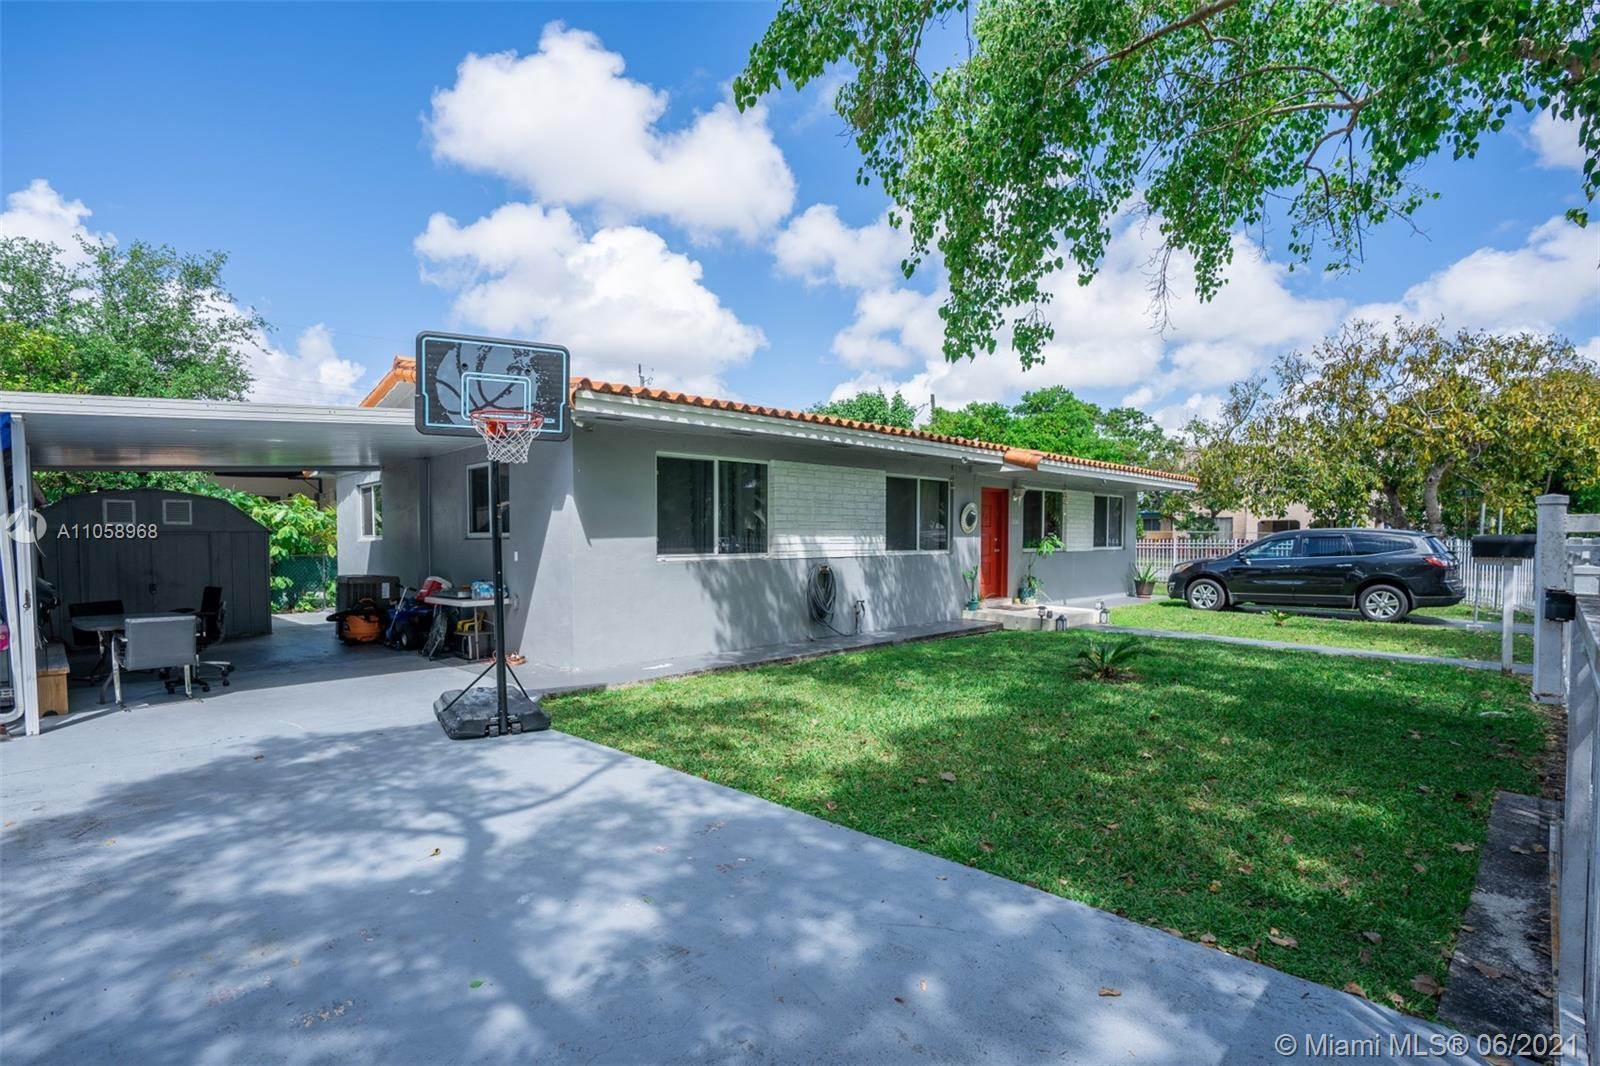 We know the safety and well-being of your family is your priority. That is why the 1000 SW 23rd Aven